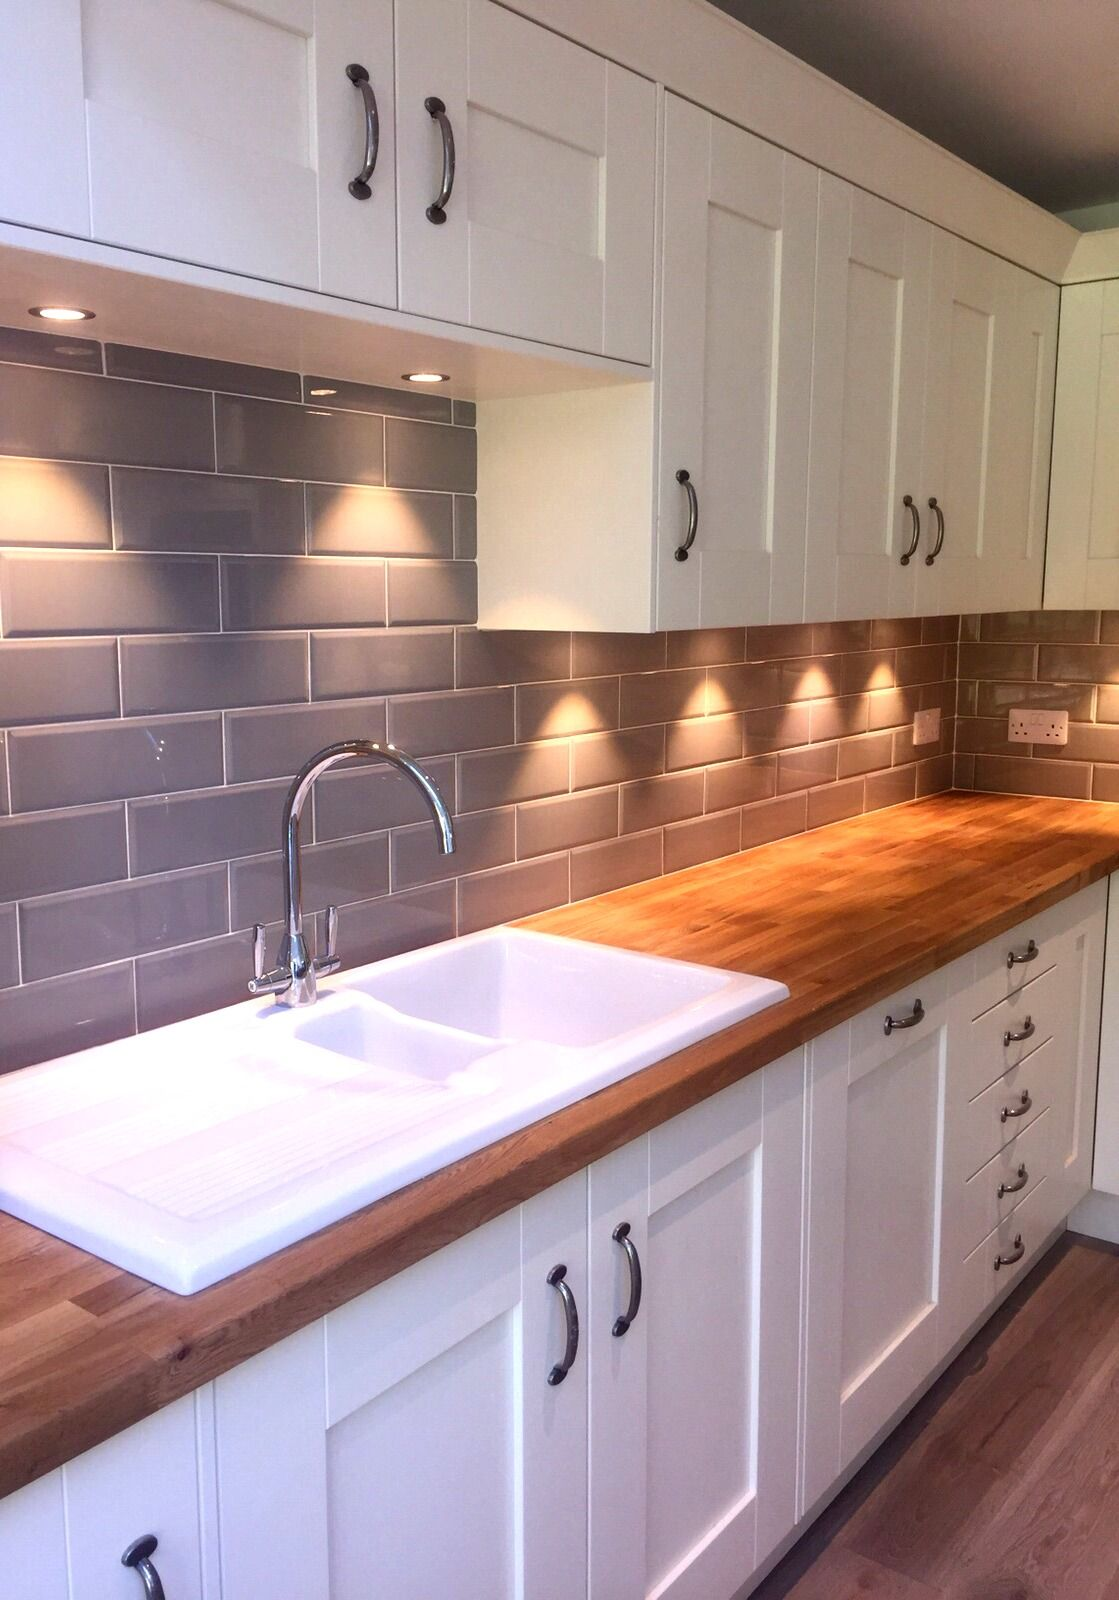 Merveilleux Our Edge Grigio Tiles Look Lovely In A Cream Kitchen With Wooden Worktops